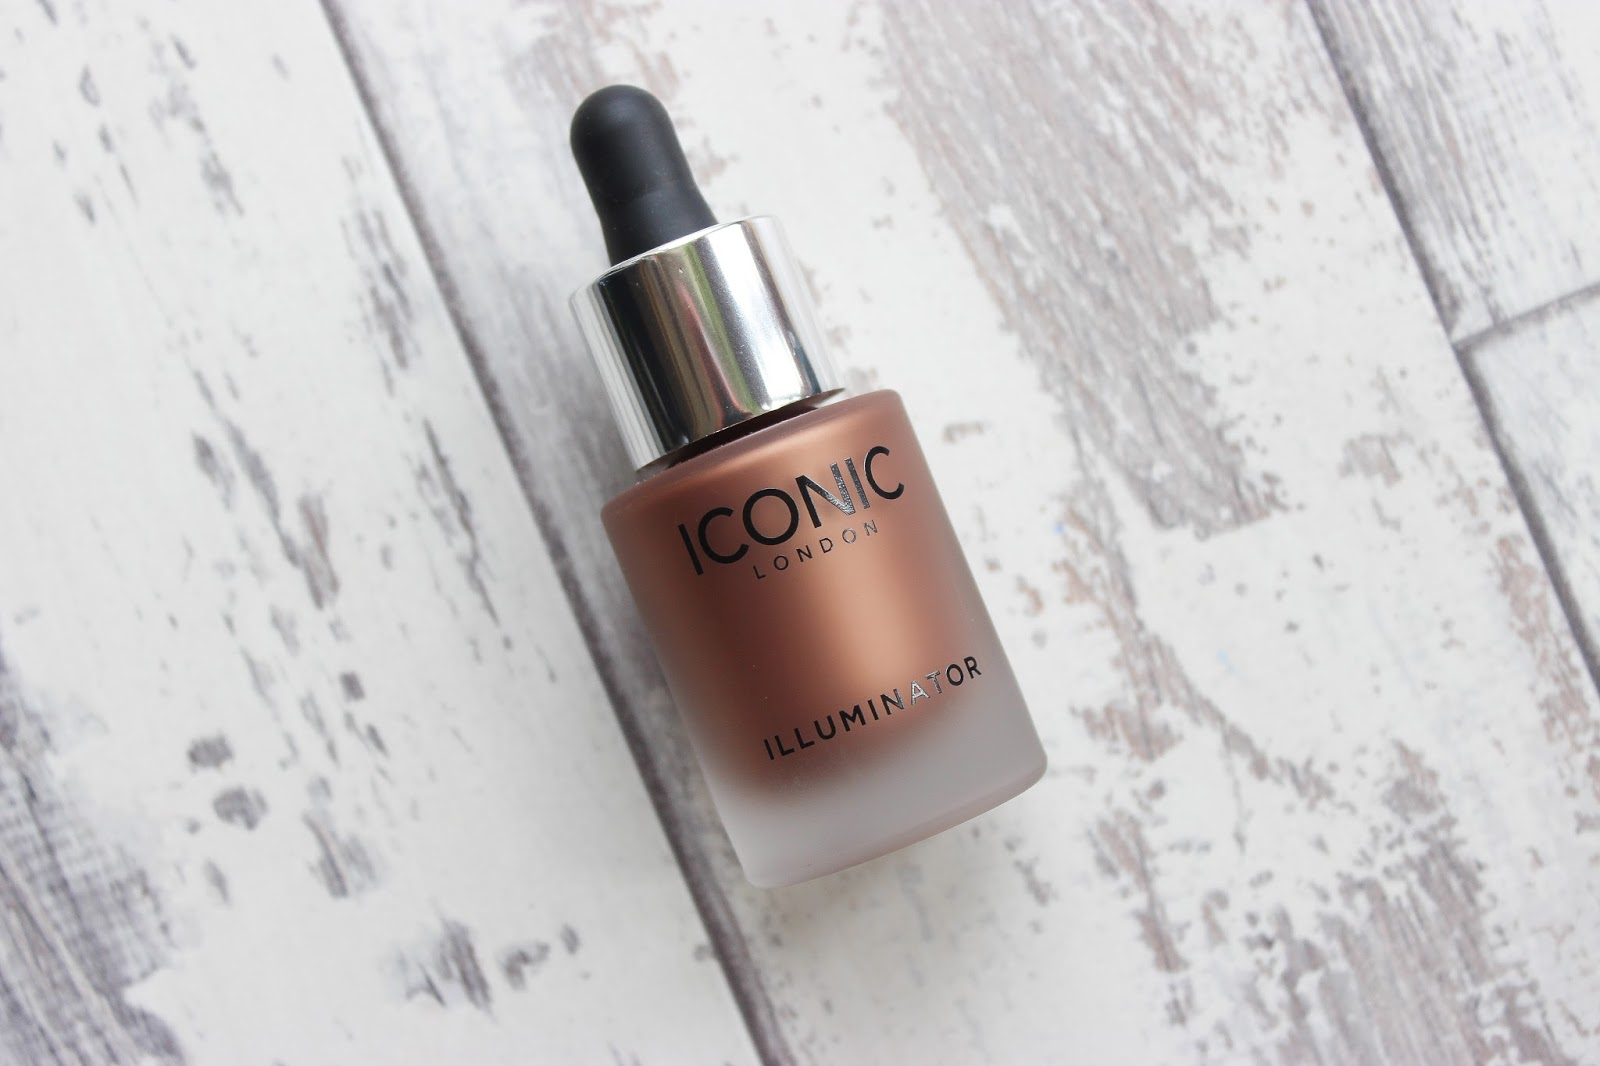 ICONIC London Pigment Stick Foundations Glow Illuminator Review Dark Skin Black Skin Brown Skin DoS Blog Spotlight Discoveries of Self Blog